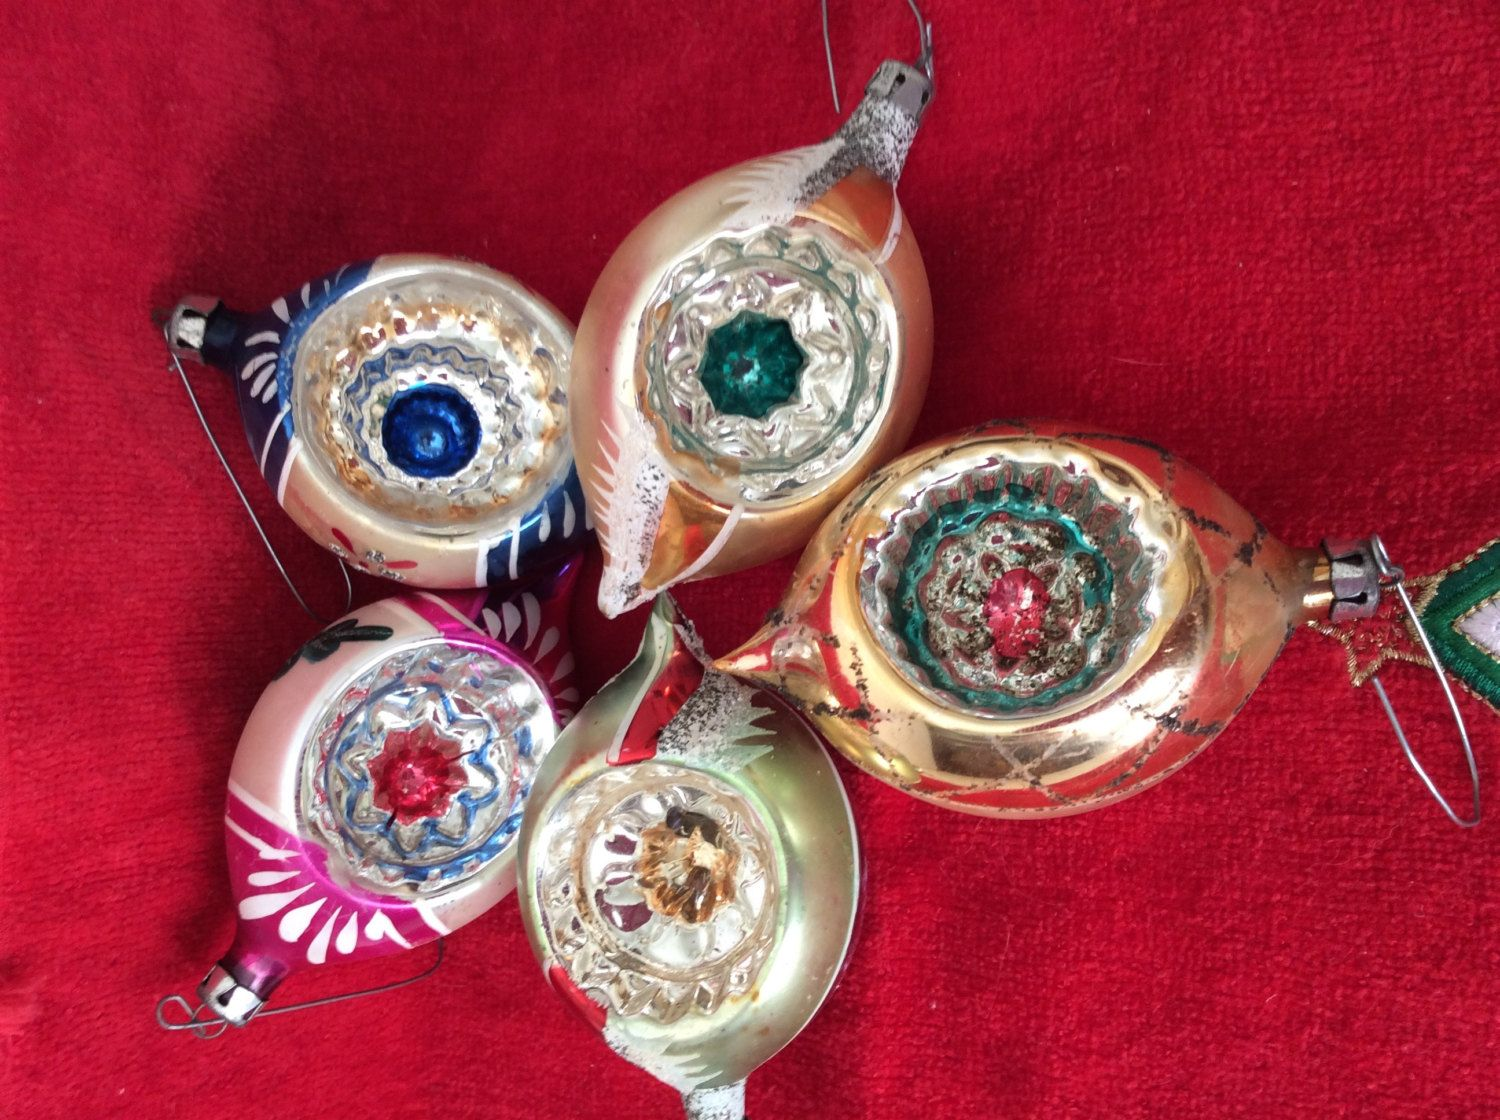 5 OLD Mercury Glass Christmas Ornaments Lot-INDENT Ornament-Red-Green-blue Flower-1950s-1960s-Christmas tree decoration-Glitter-Poland glass by VintageTreasuresRus on Etsy